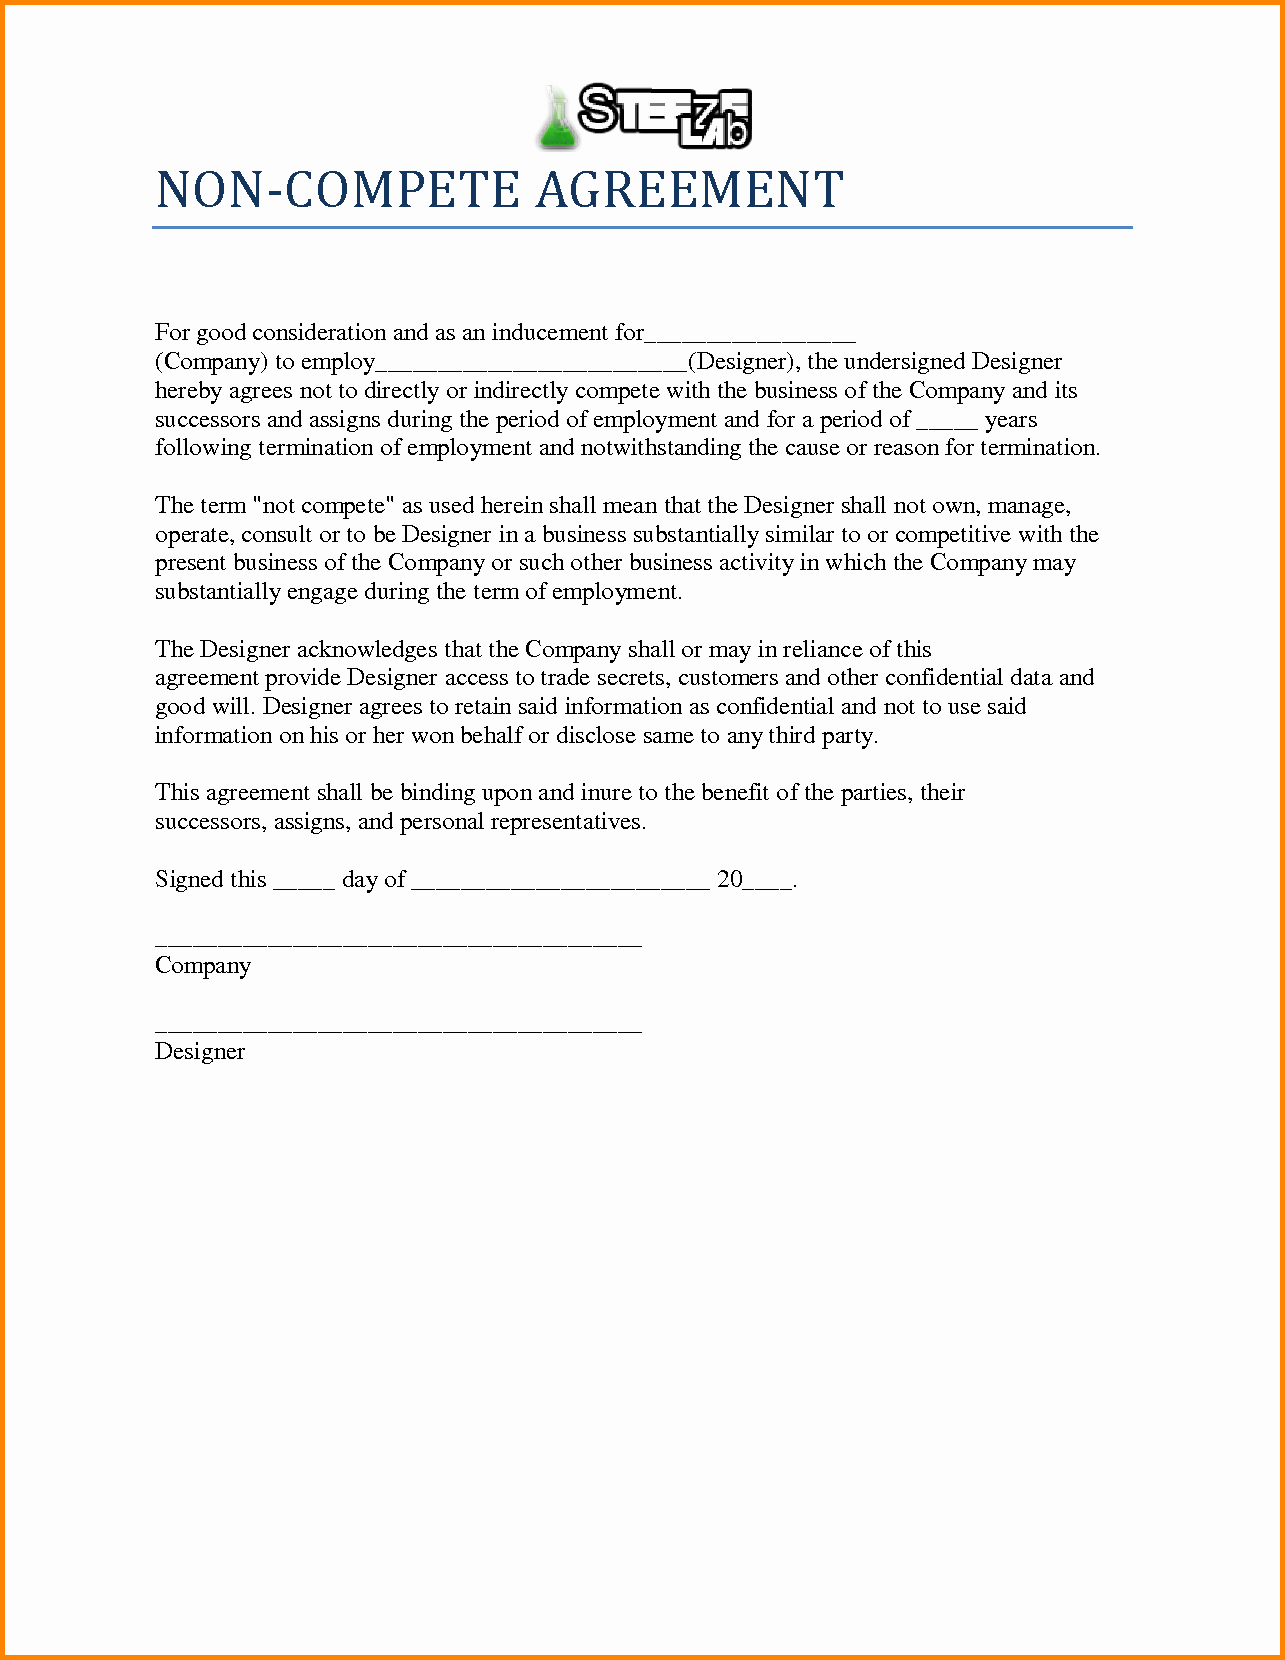 Employee Non Compete Agreement Template Best Of Agreement Non Pete Agreement form